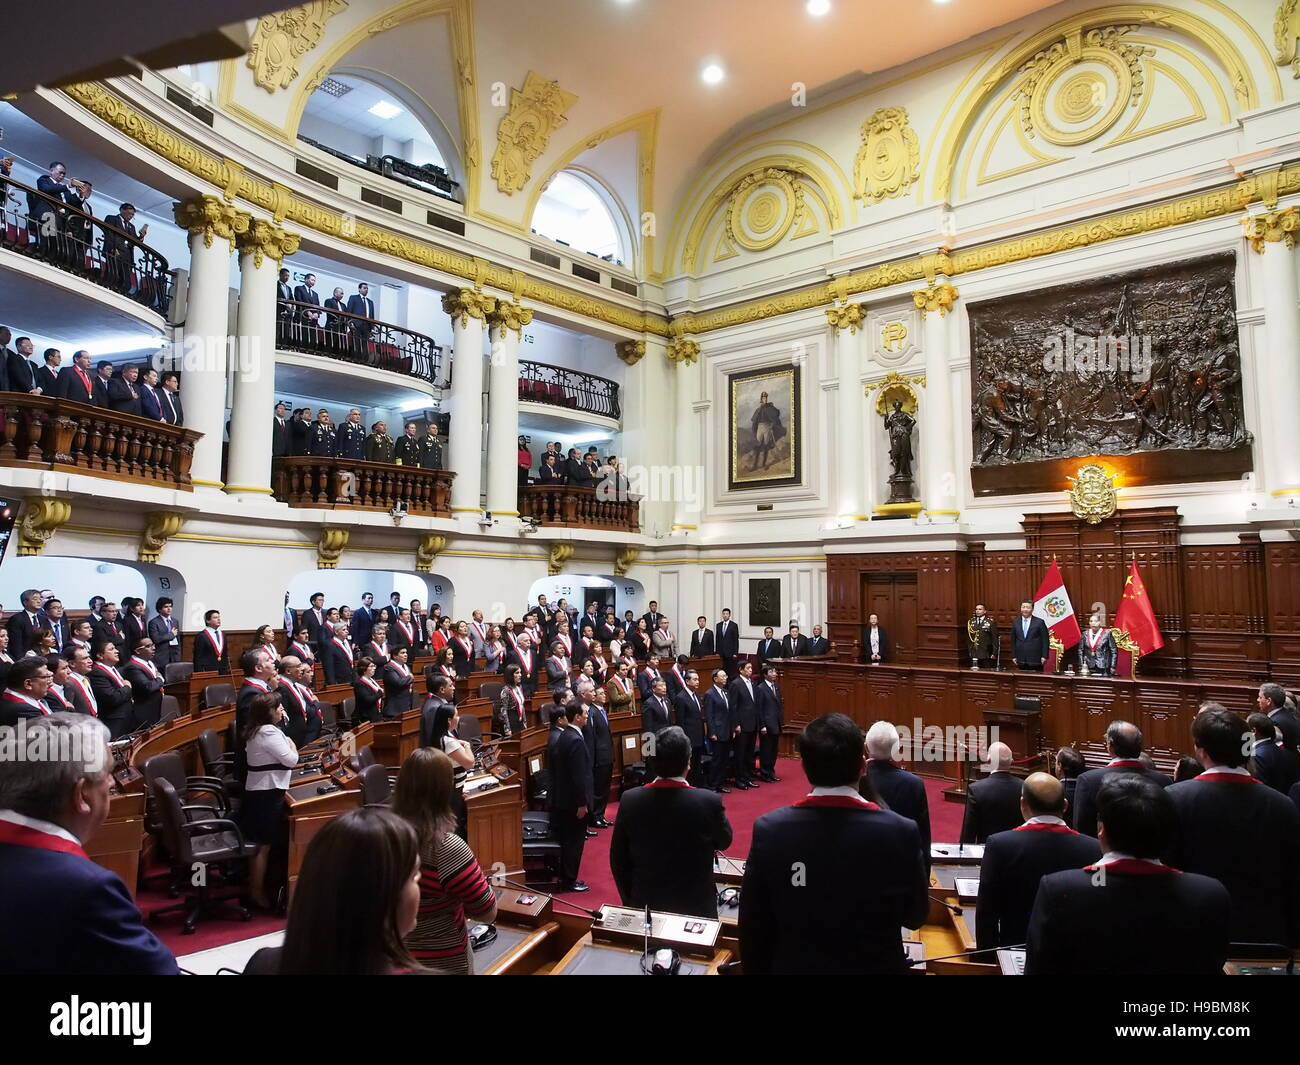 The President of the People's Republic of China, Xi Jinping, and Luz Salgado, president of the Peruvian Congress, - Stock Image